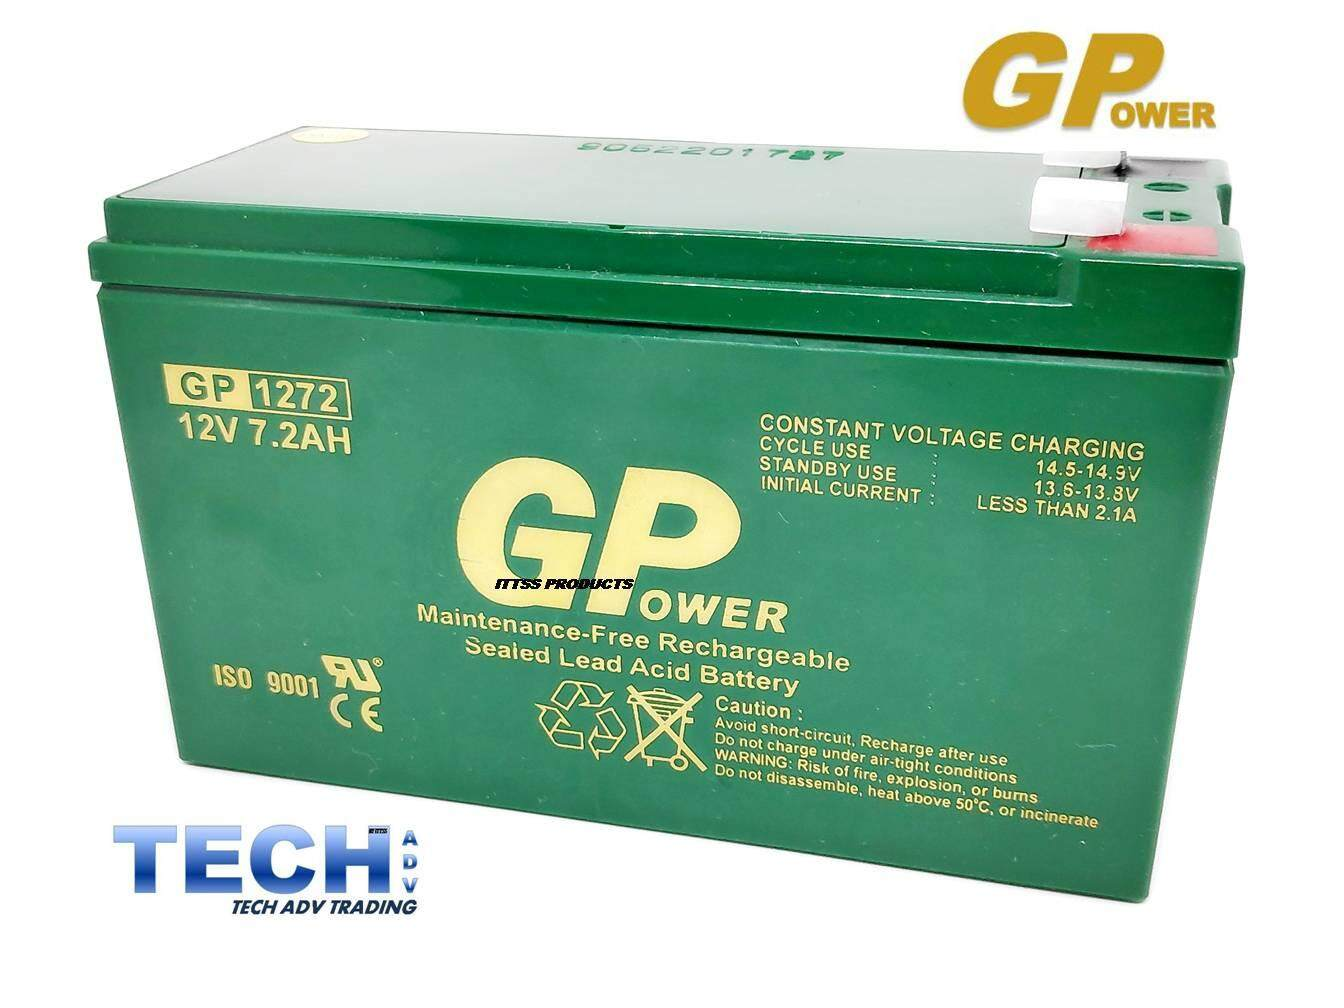 GP - GPOWER 12V 7AH PREMIUM Rechargeable Sealed Lead Acid Battery For Electric Scooter/ Toys car / Bike /Solar /Alarm /Autogate (rename (upgraded) to GPOWER 12V 7.2AH) Malaysia